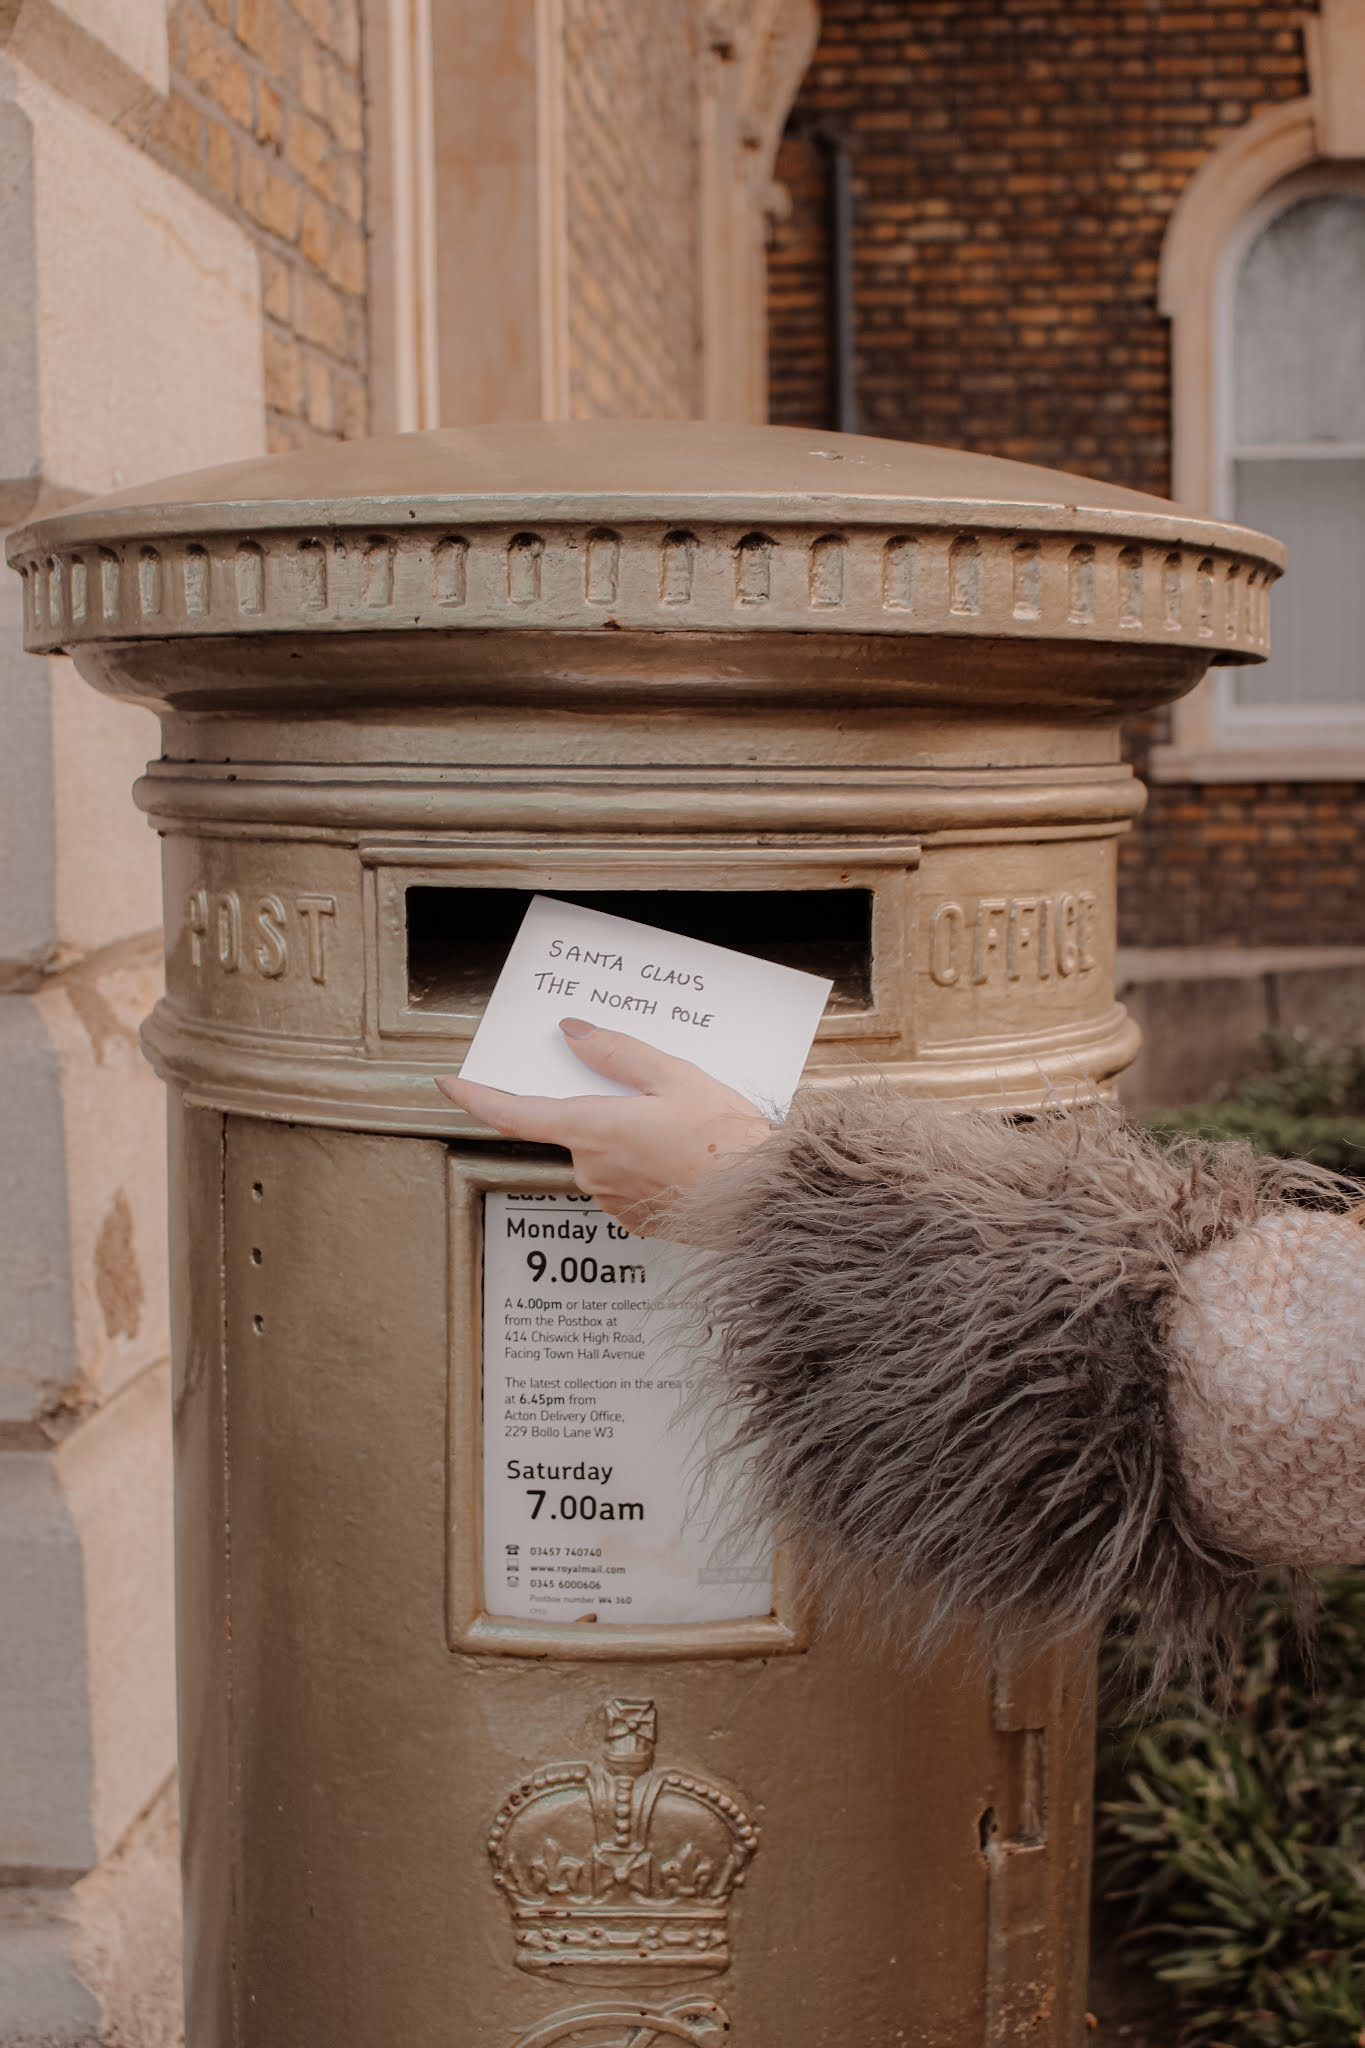 Olympic Gold Post Office Box